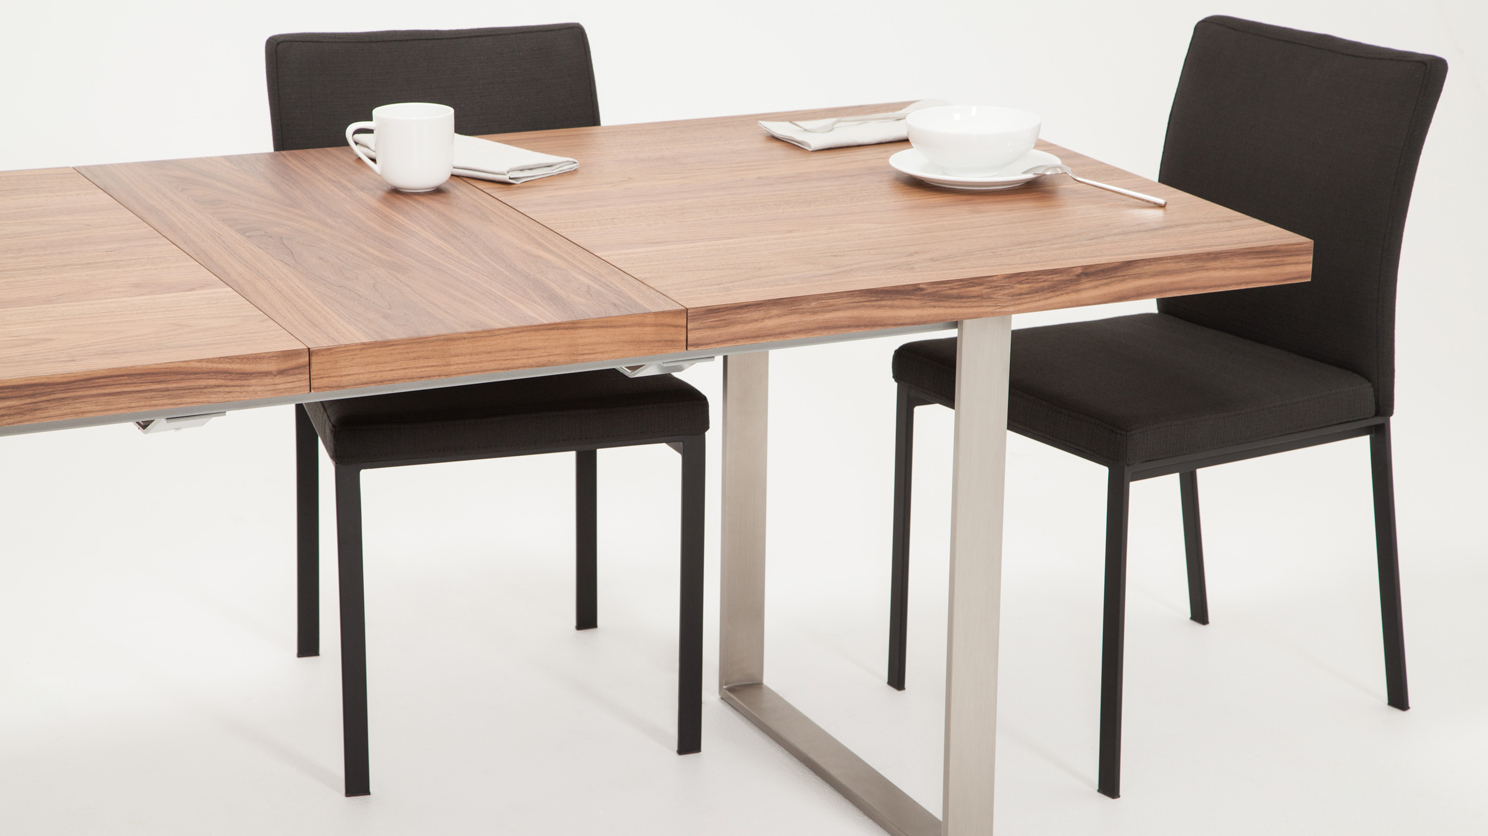 The Hatch dining table from EQ3 has a self storing leaf and a gorgeous walnut finish.